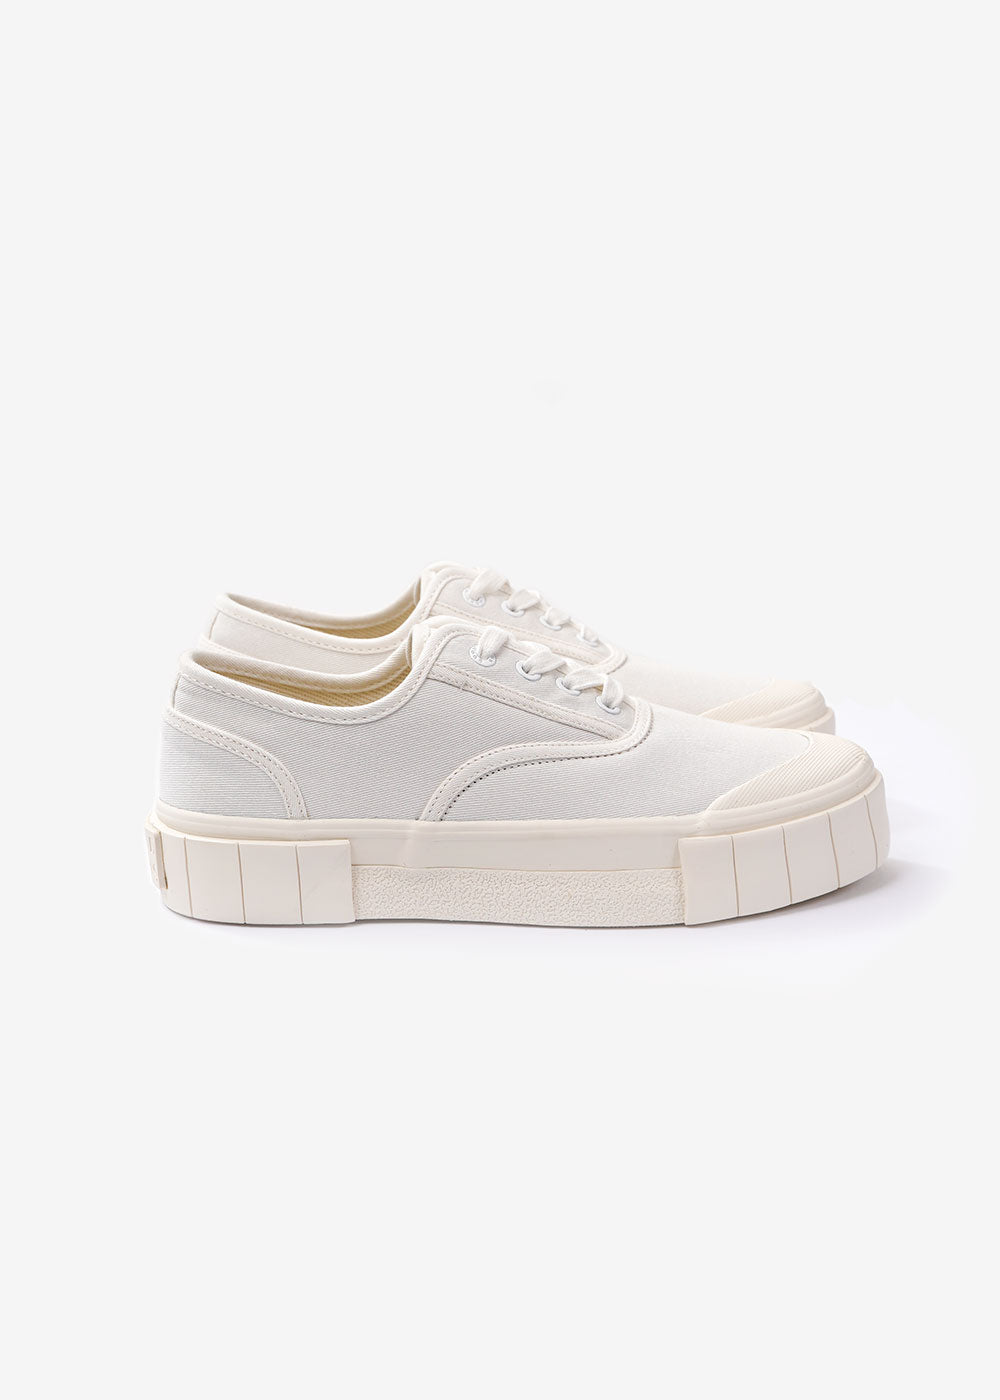 GOOD NEWS Off White Bagger 2 Low Sneakers — New Classics Studios